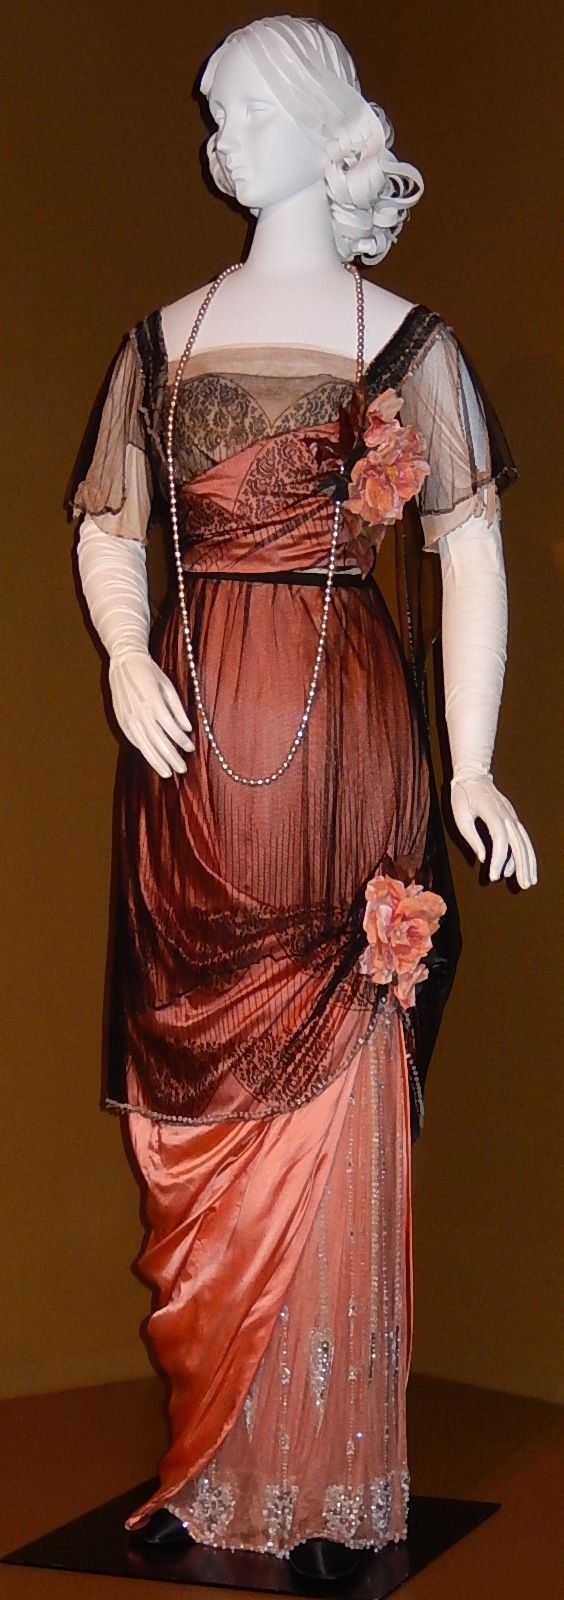 Evening Dress Jeanne Paquin 1912